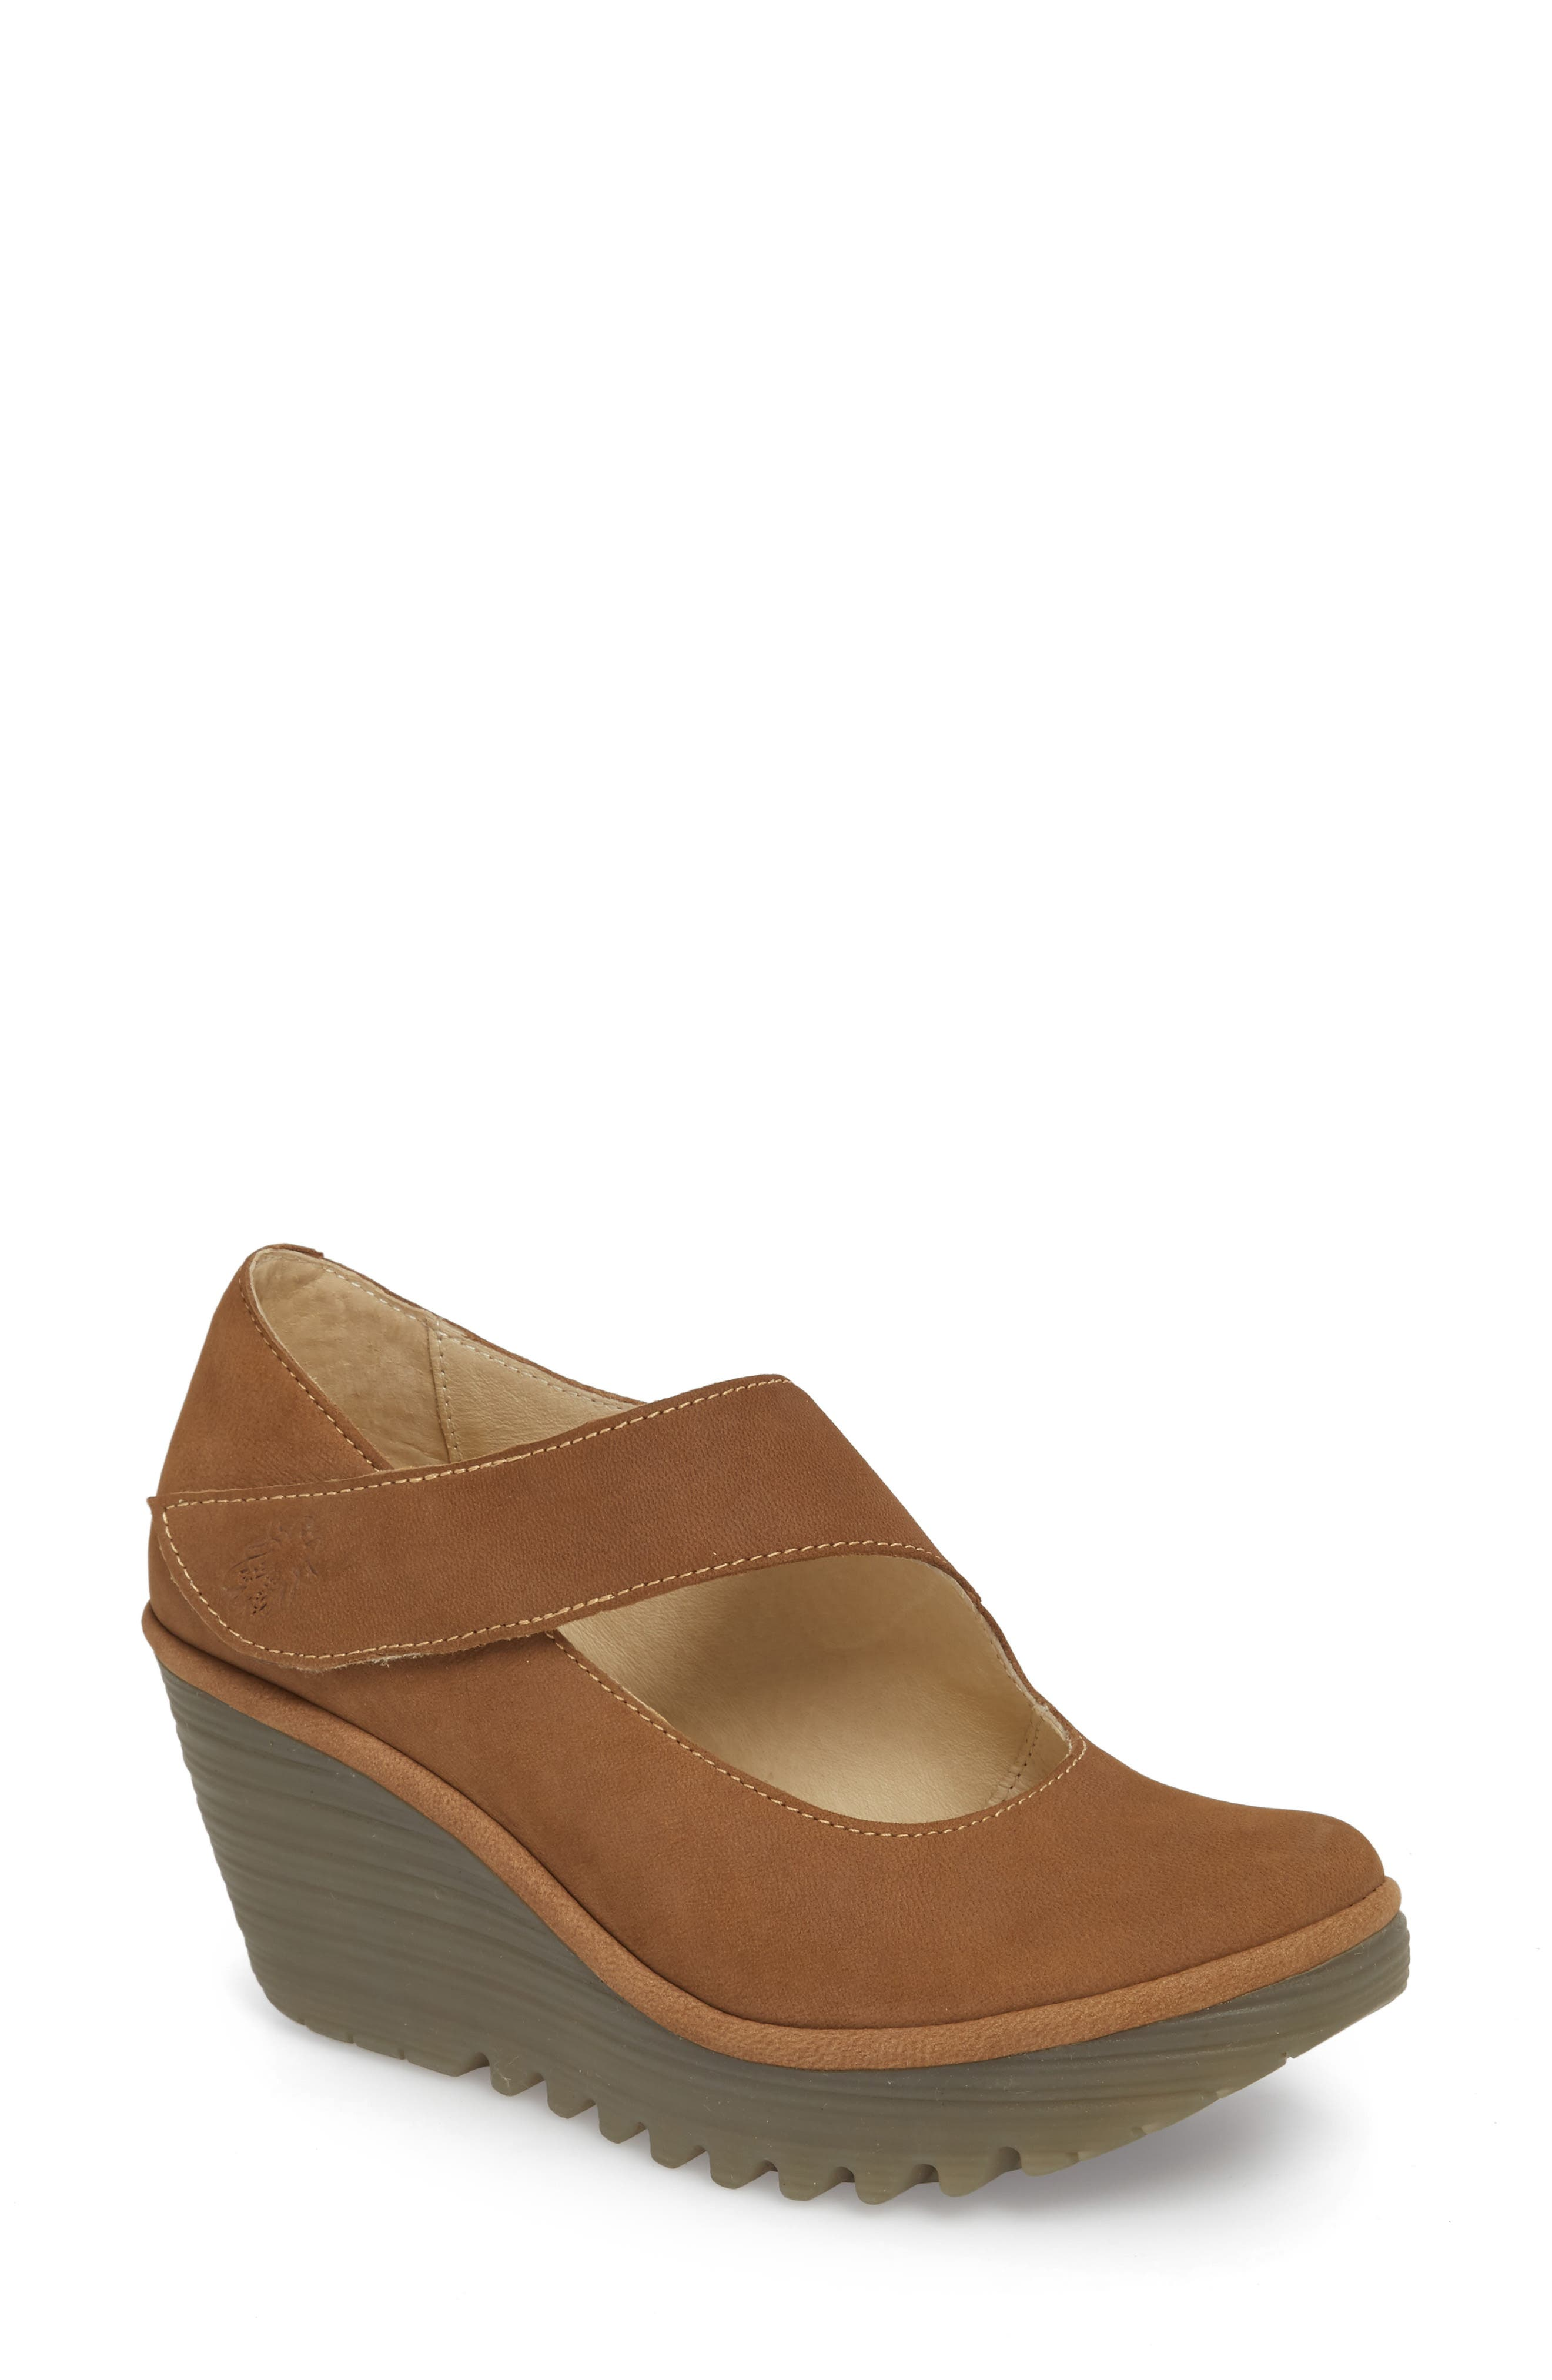 'Yasi' Wedge Pump,                         Main,                         color, Sand Cupido Leather